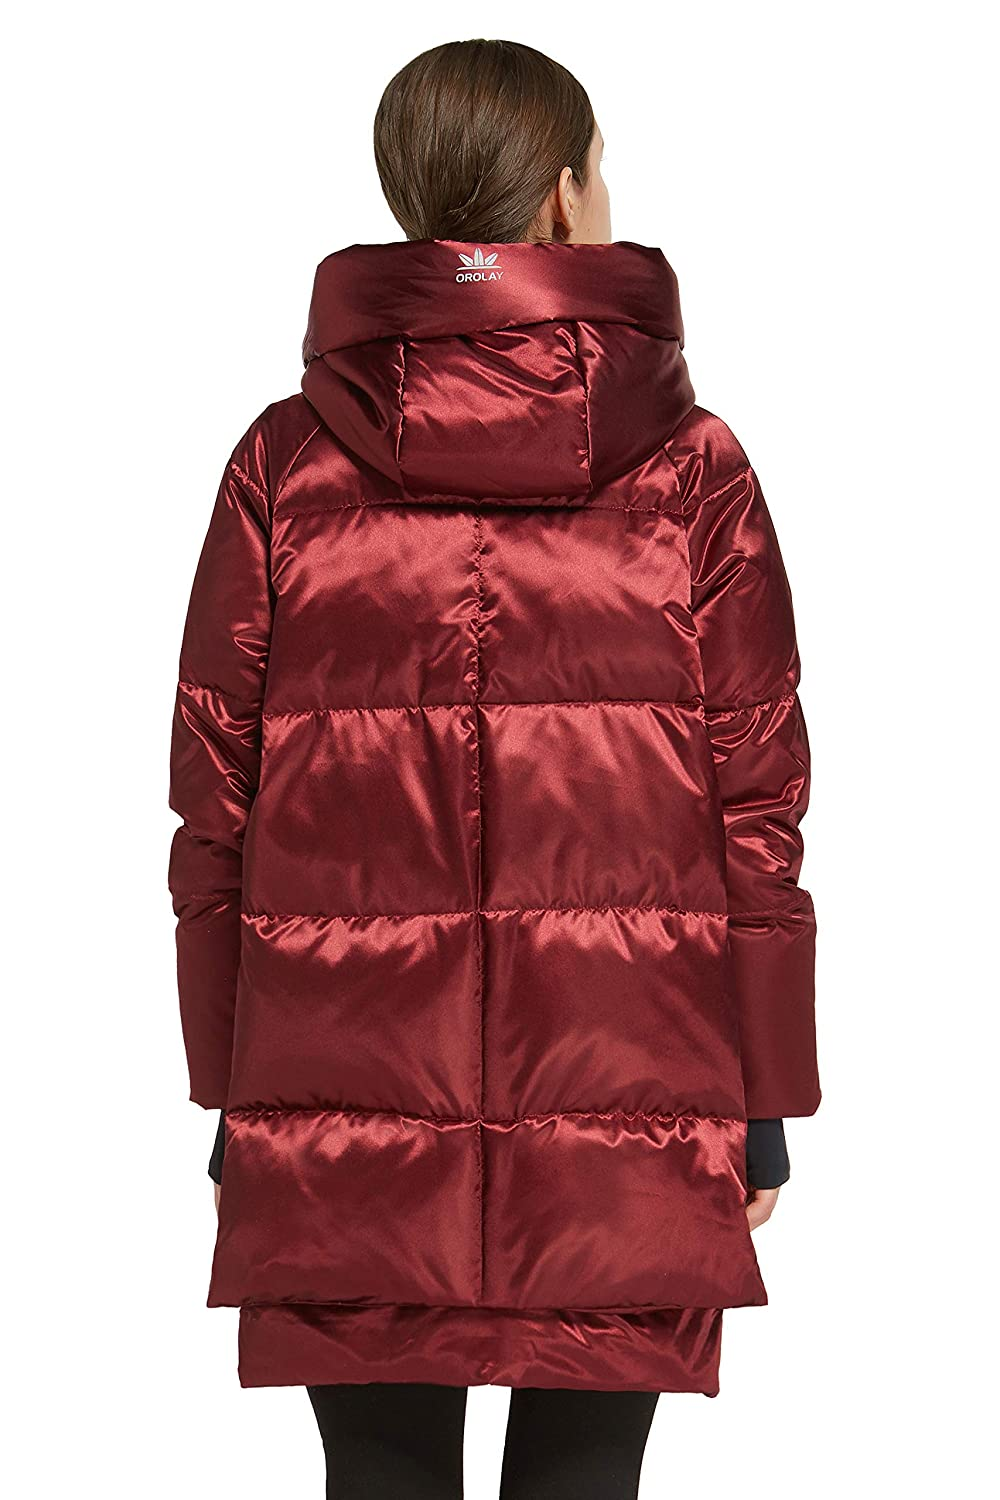 Orolay Womens Thickened Hooded Down Jacket